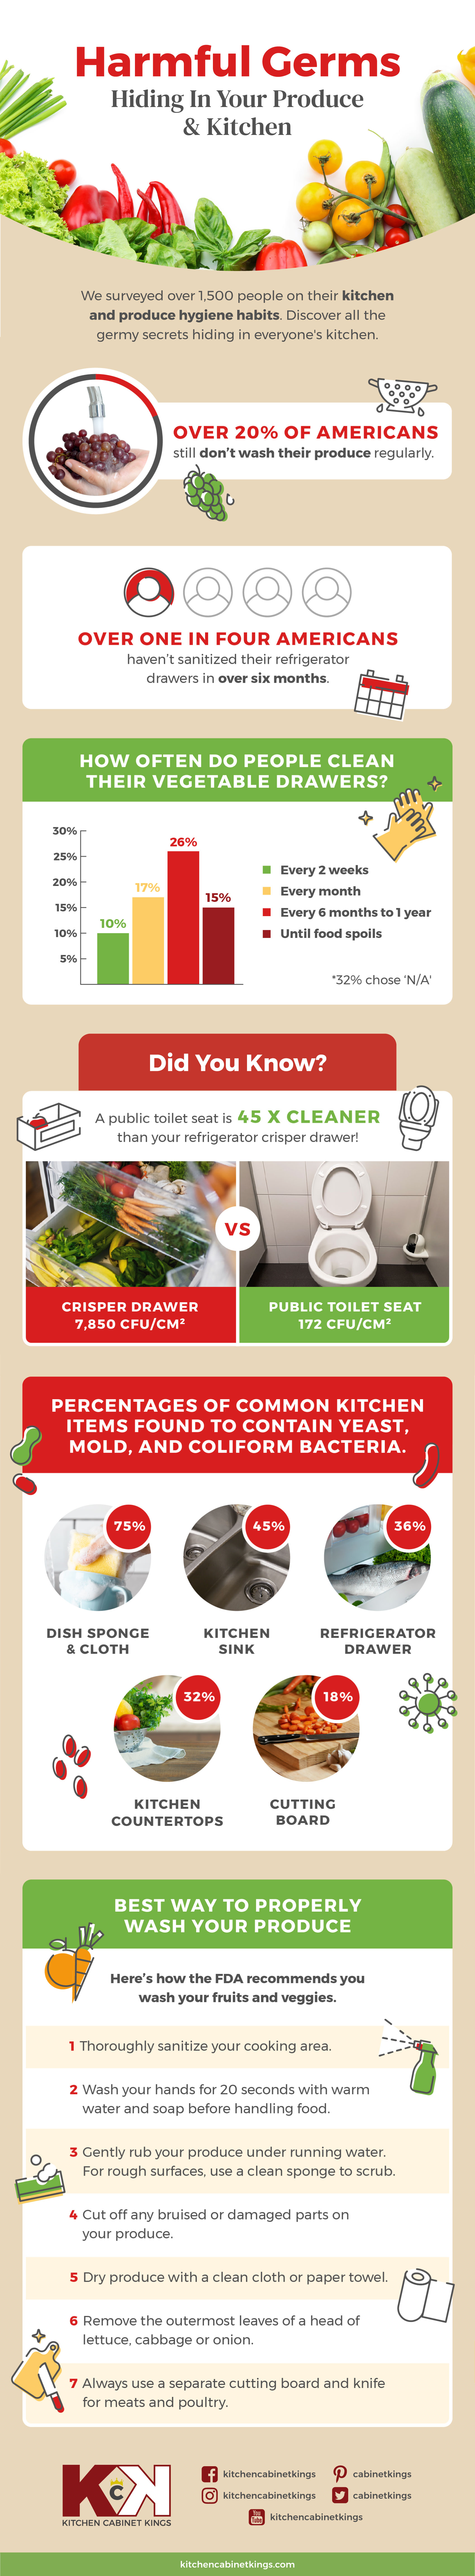 Kitchen and Produce Hygiene Habits [Infographic] | ecogreenlove